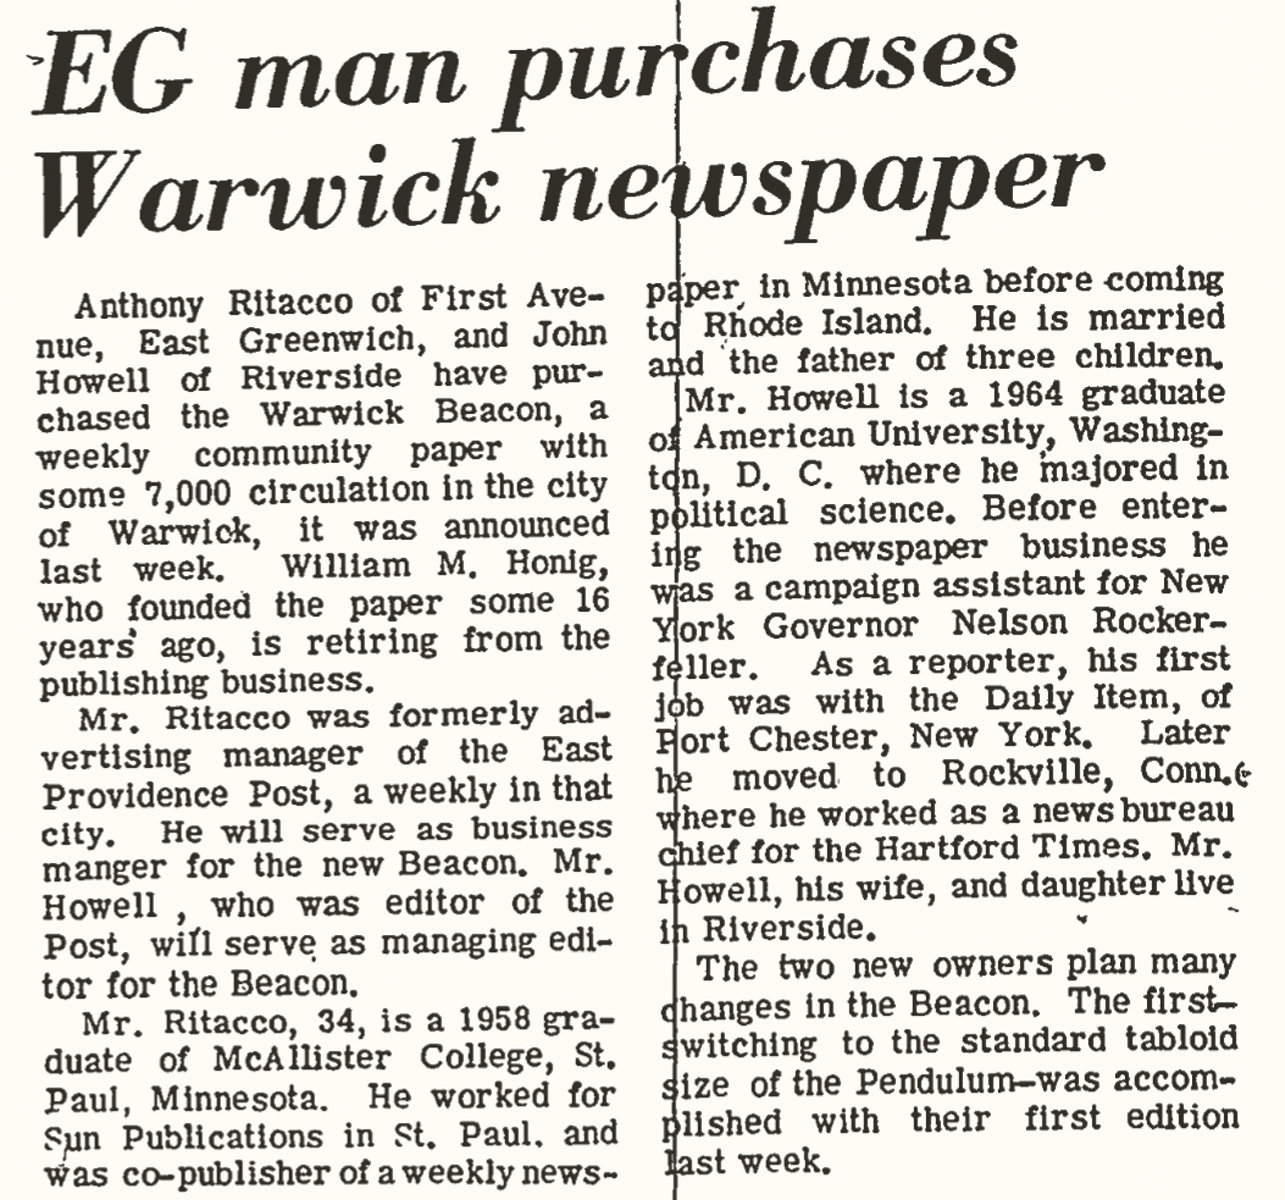 MAKING NEWS: A 1969 clip from the East Greenwich Pendulum announces news of the Warwick Beacon's sale to John Howell and Anthony Ritacco. (Courtesy of John Howell)